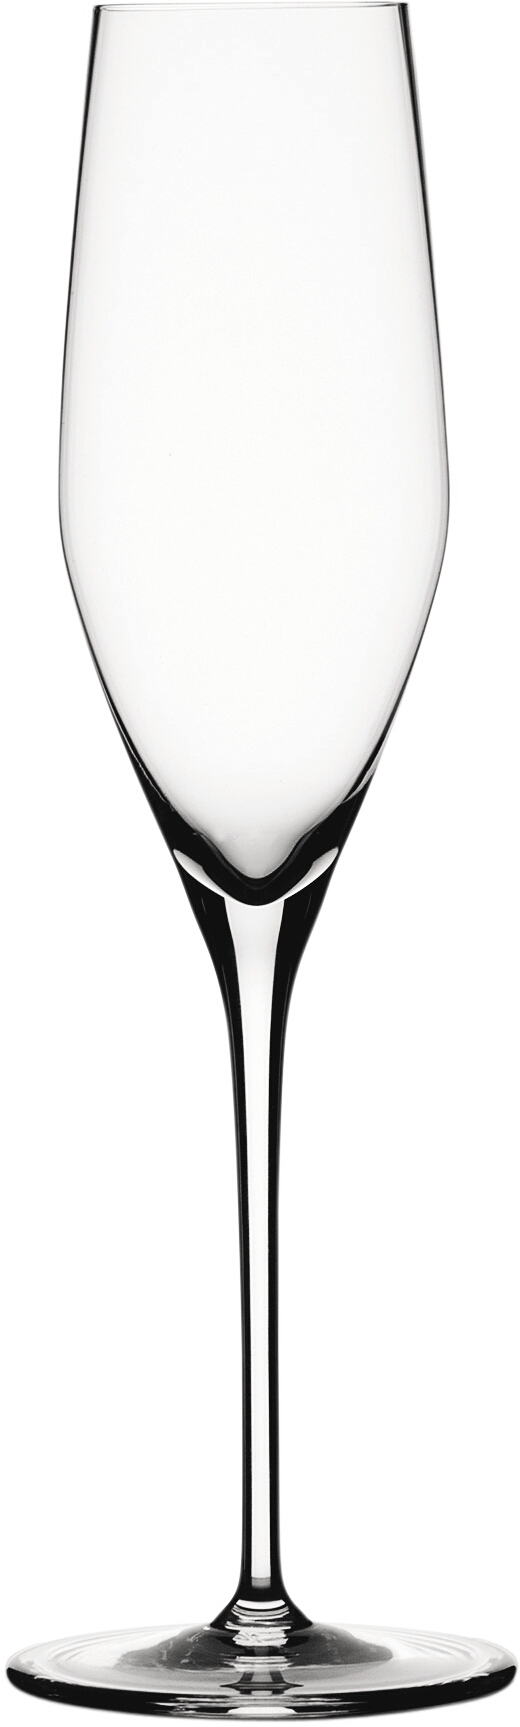 Spiegelau Special Import Authentis Crystal Champagne Flute, Set of 2